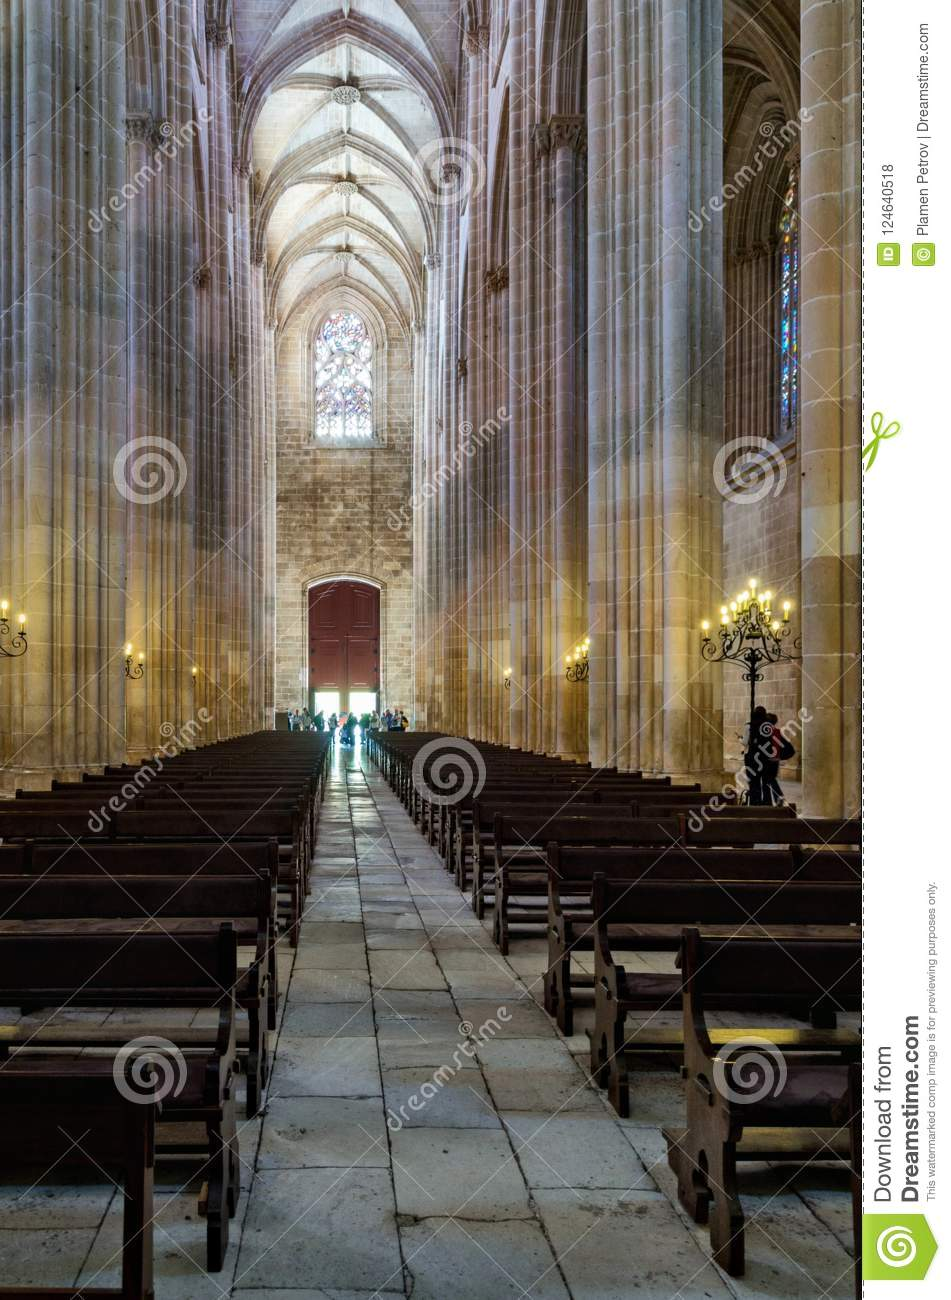 El interior de la catedral en Batalya - Portugal